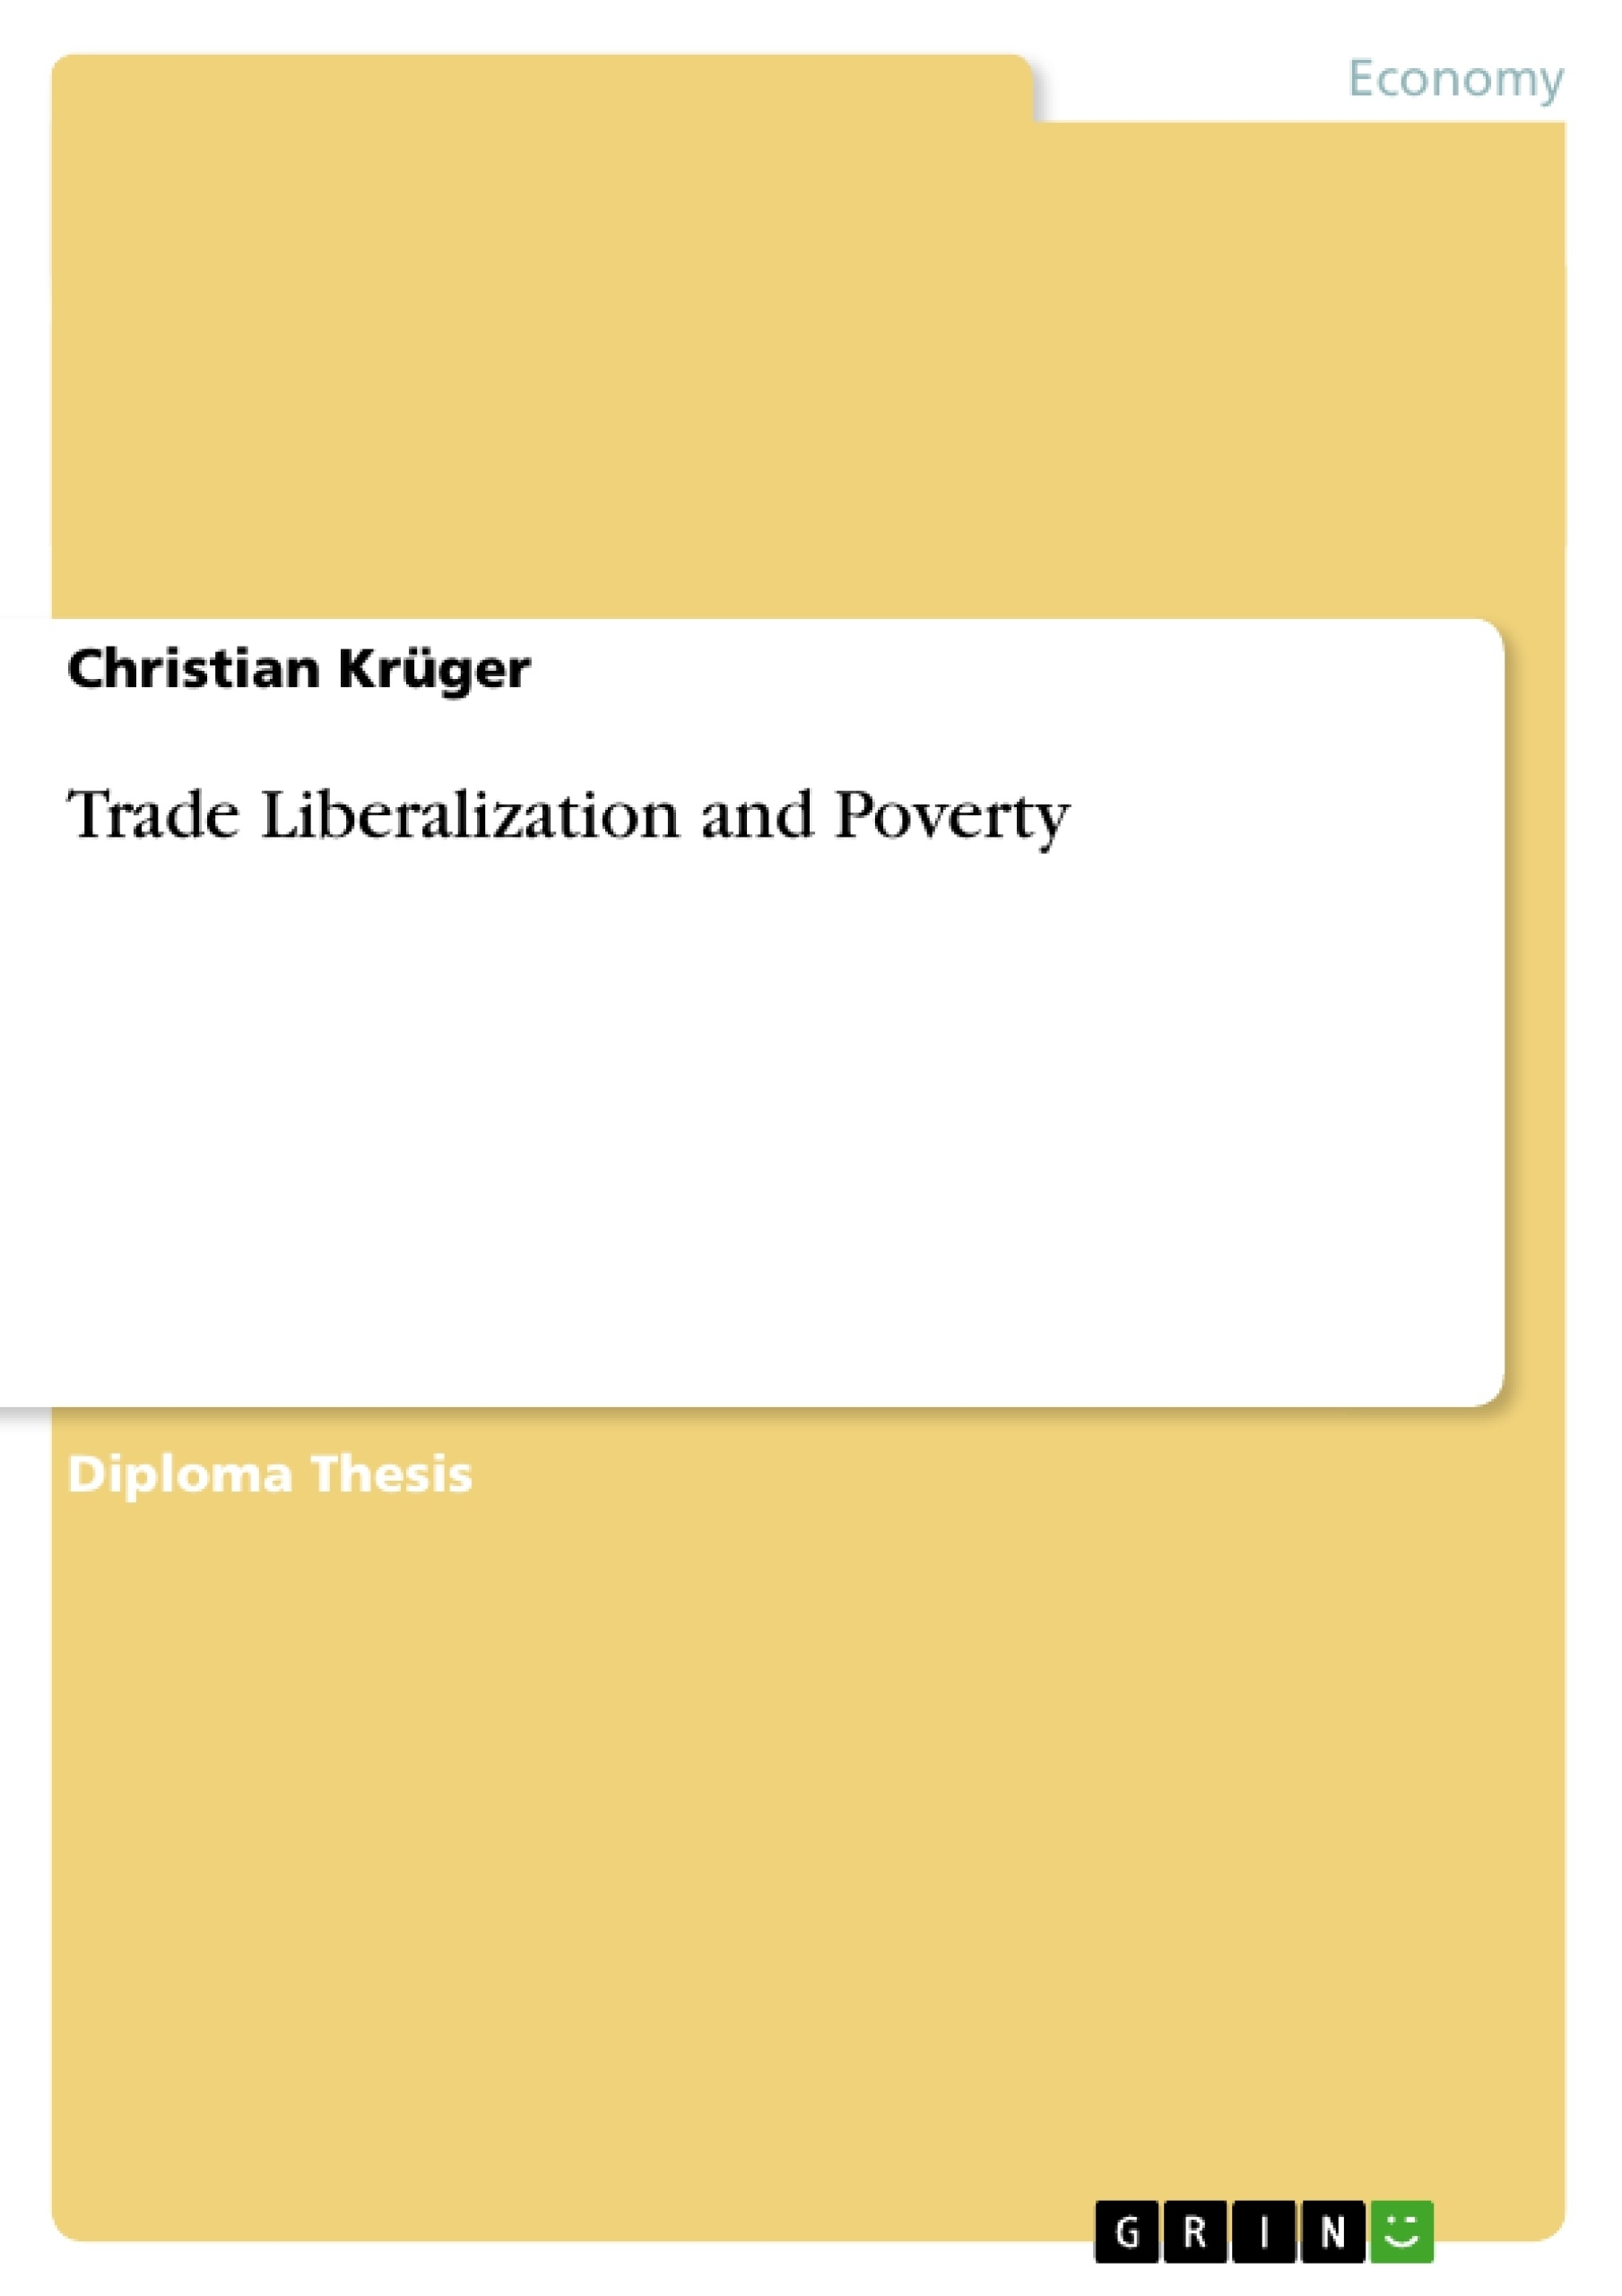 Title: Trade Liberalization and Poverty